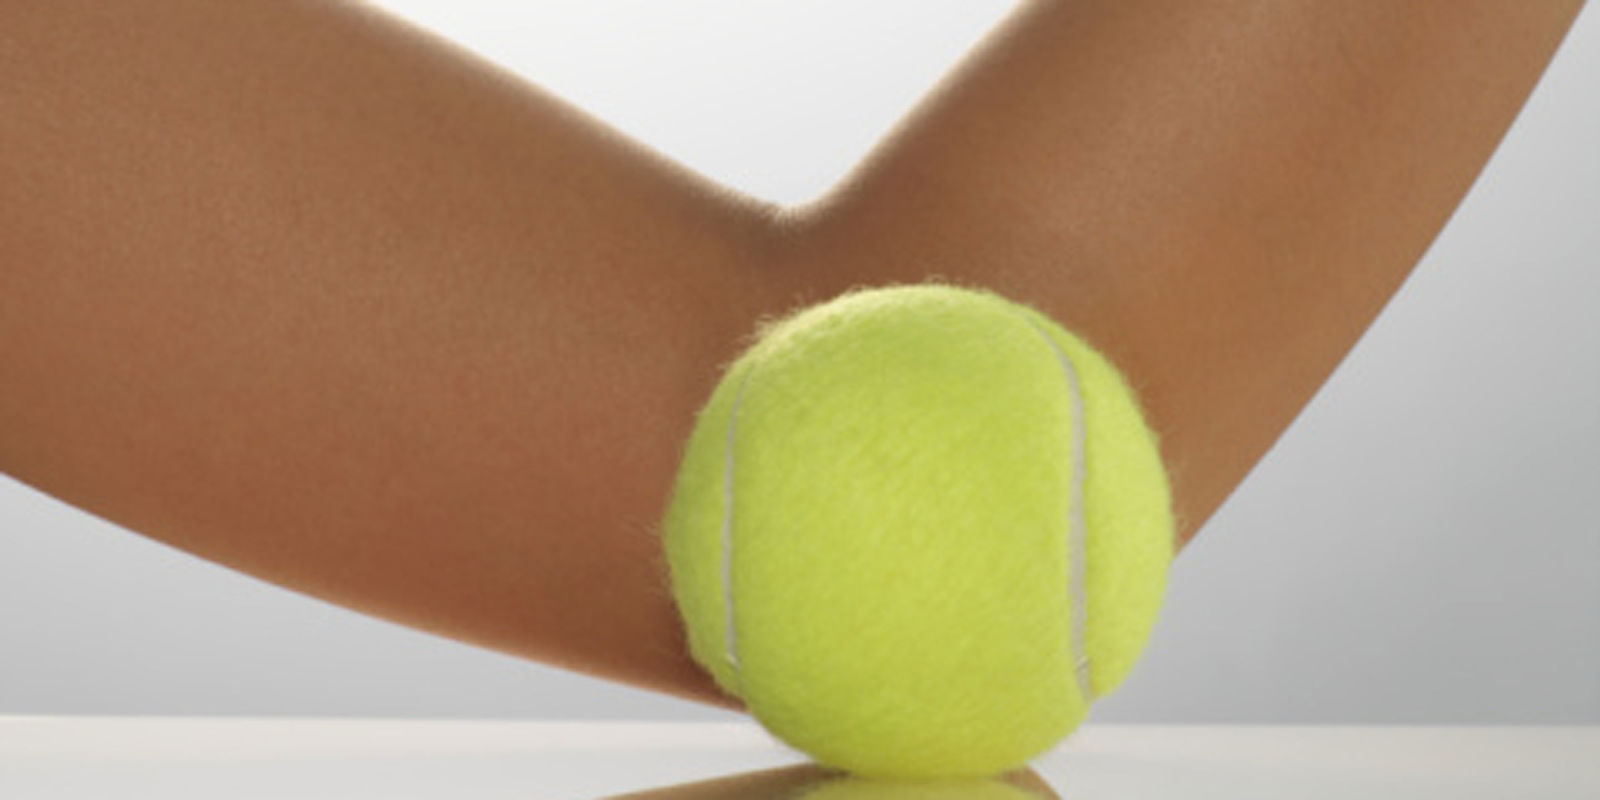 tennis elbow Care guide for tennis elbow exercises includes: possible causes, signs and symptoms, standard treatment options and means of care and support.